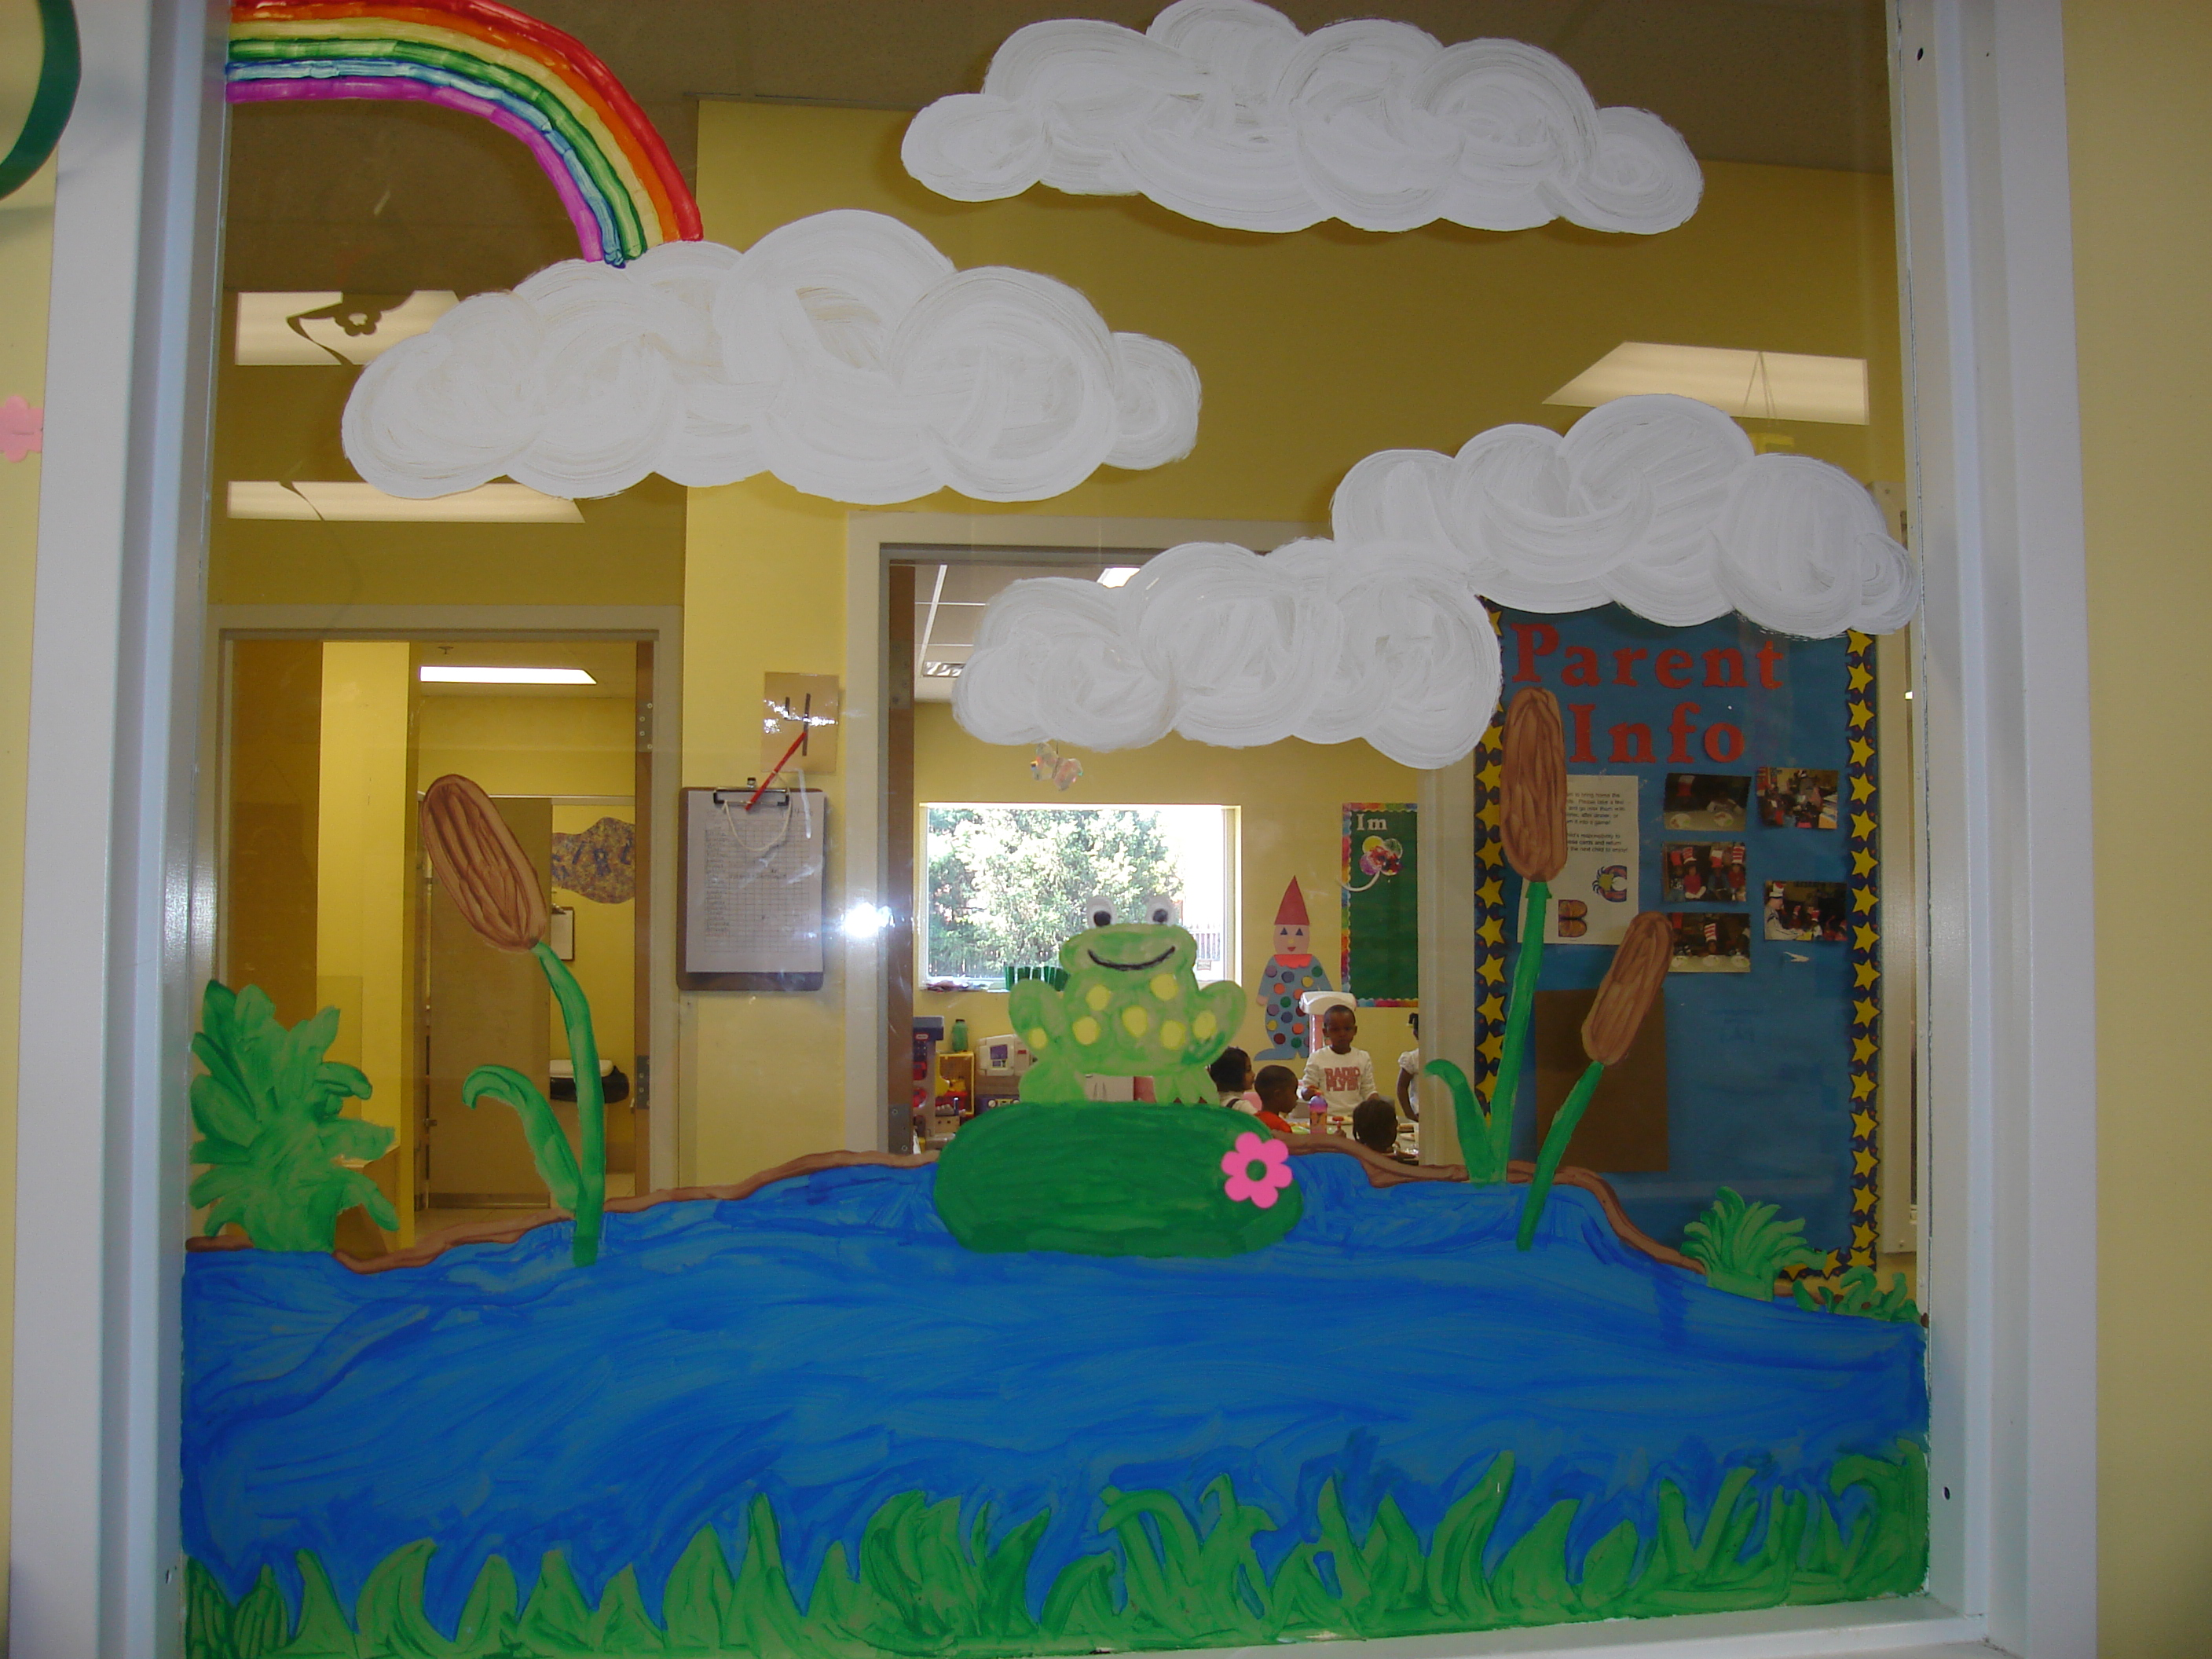 Classroom Windows Decoration Ideas : Class photos